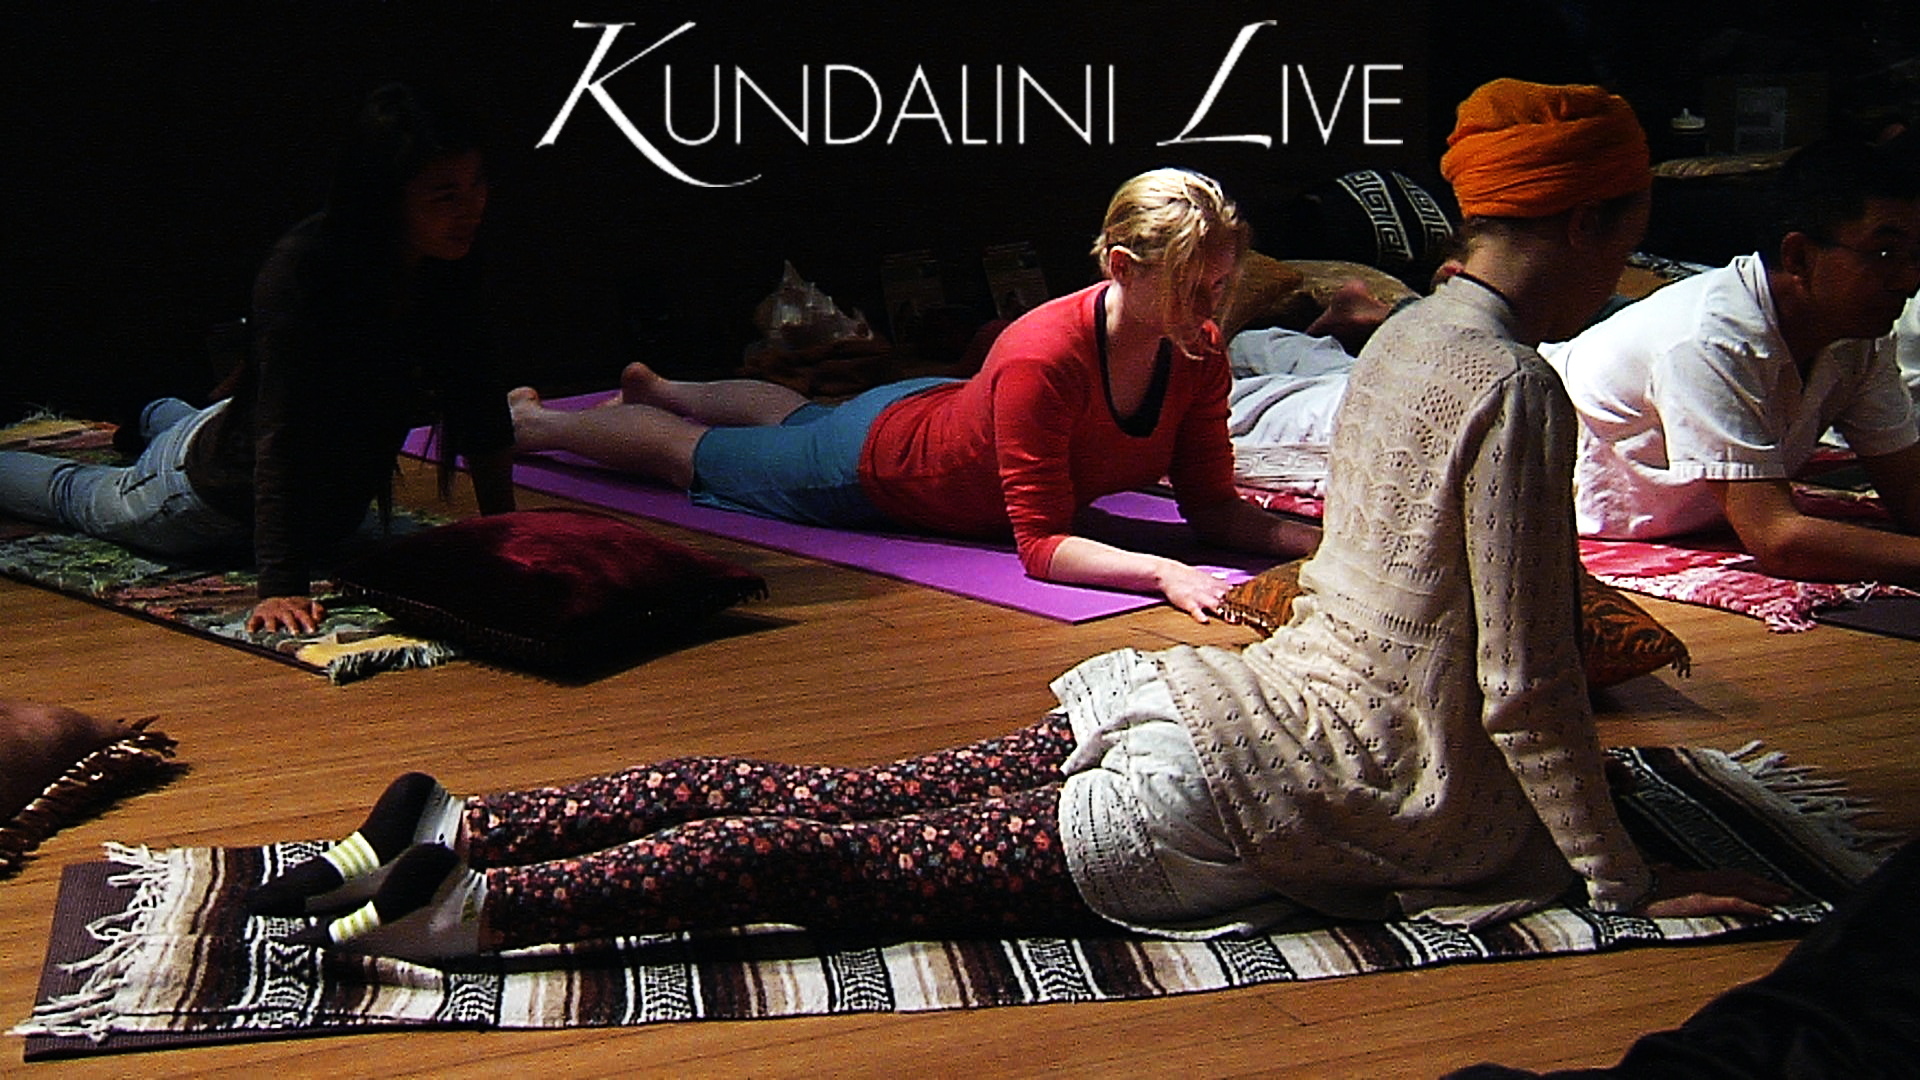 upward facing dog cobra pose girls in evening yoga class wake their natural centers for healthy healing of kundalini